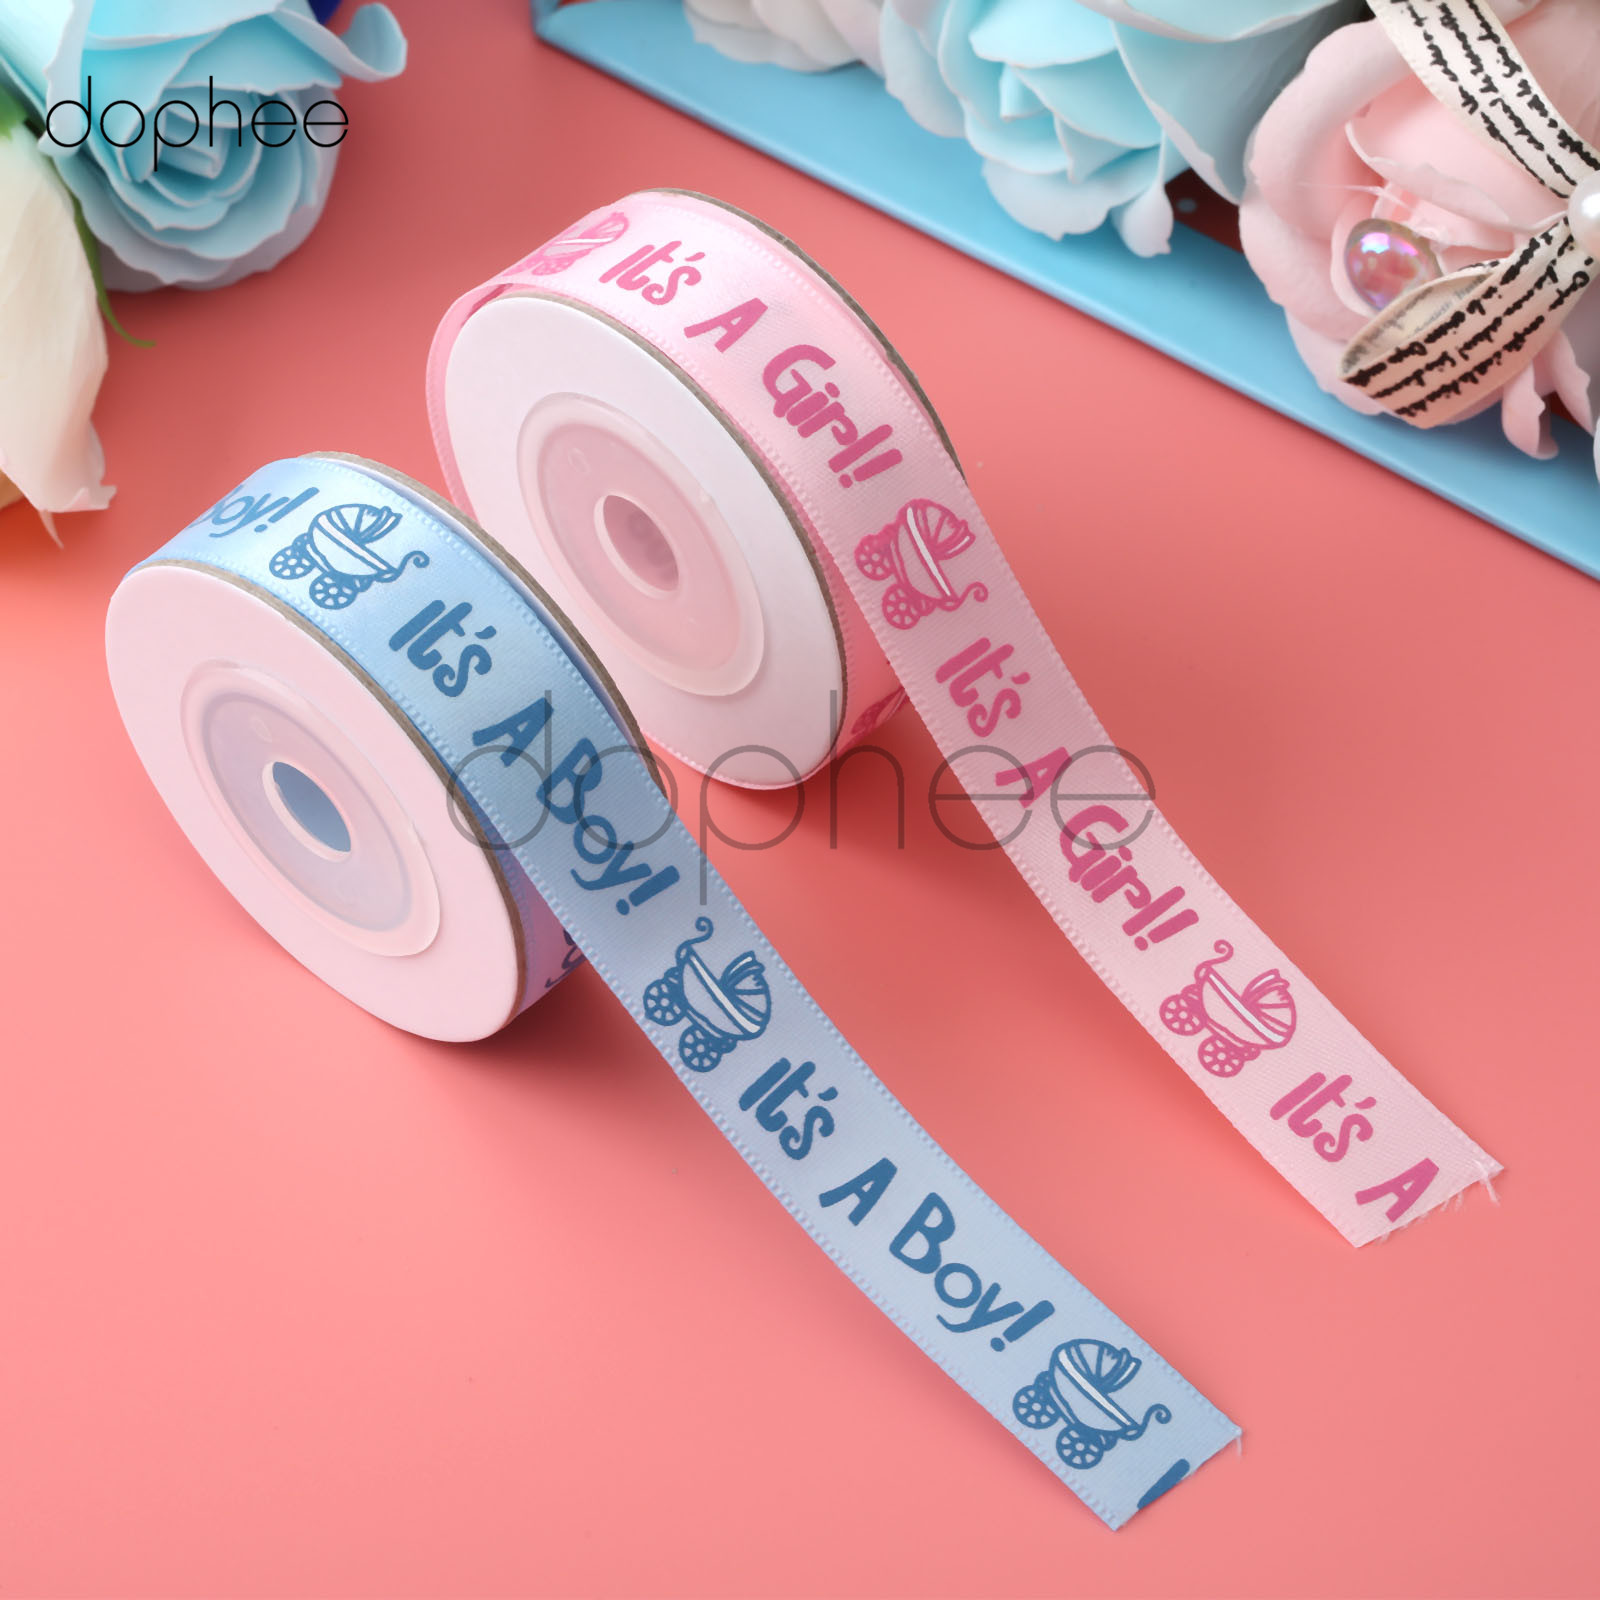 dophee 10 yards Satin Ribbon Baby Shower Printed  Its A Boy/Its A Girl r Birthday Party Decor DIY Card Gift Wrapping Supplies